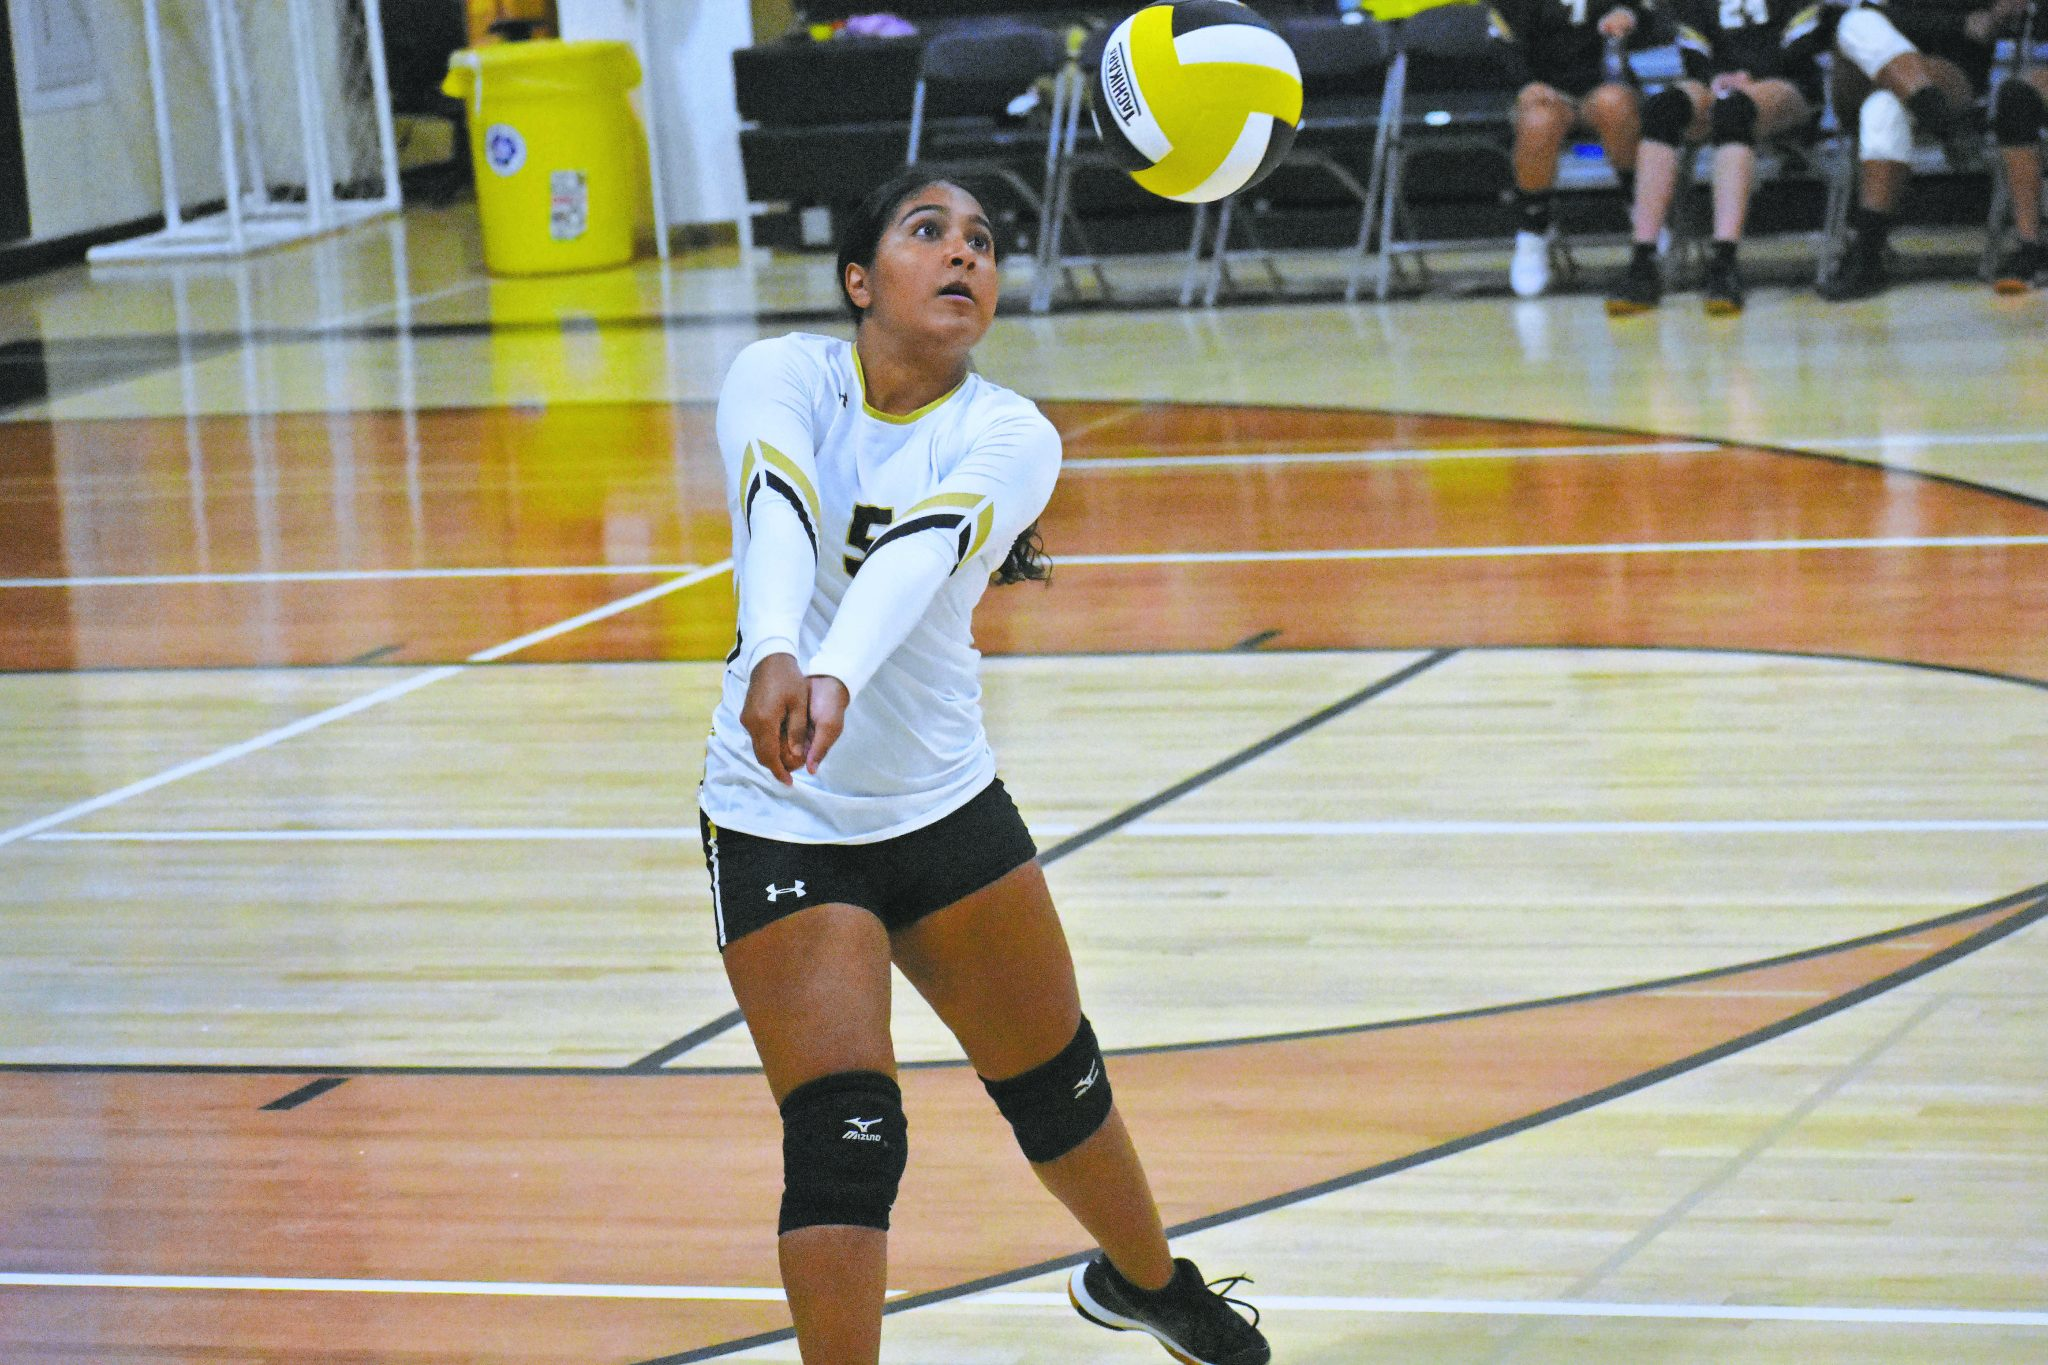 Serves Up Burlington Township Timber Creek Among Local Schools Making Their Debut In Girls Volleyball The Sun Newspapers